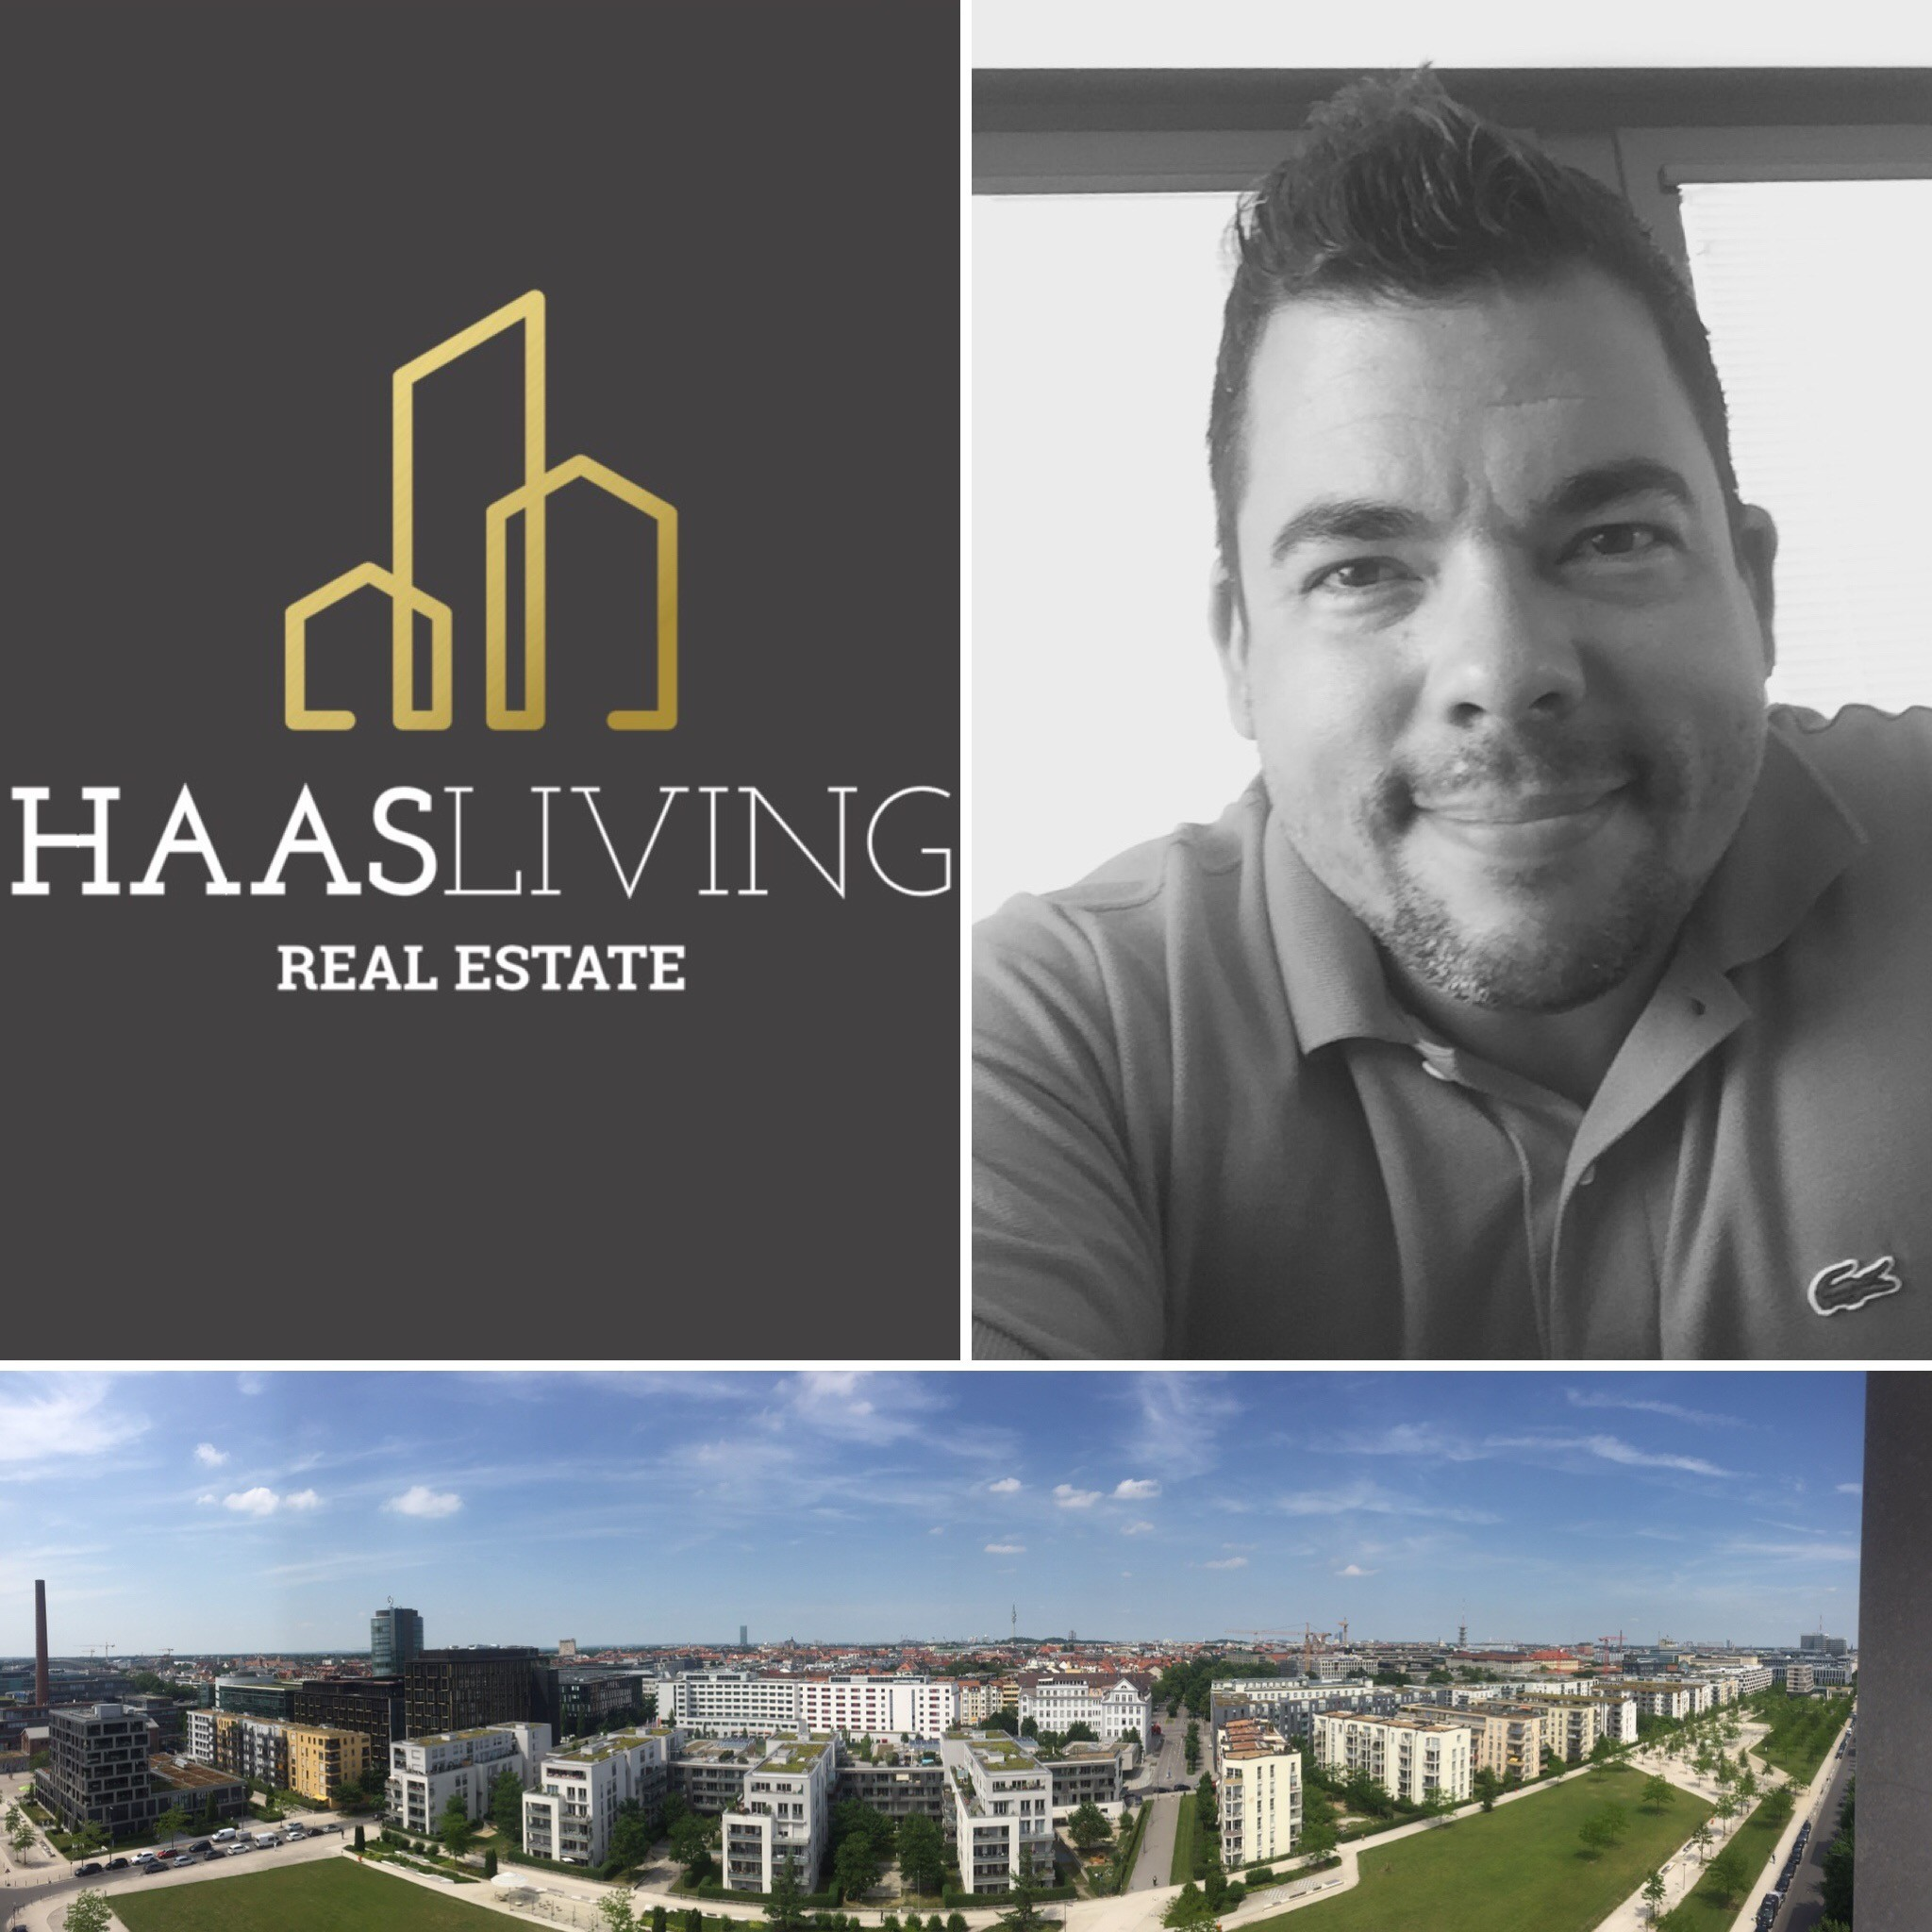 HAAS LIVING Real Estate